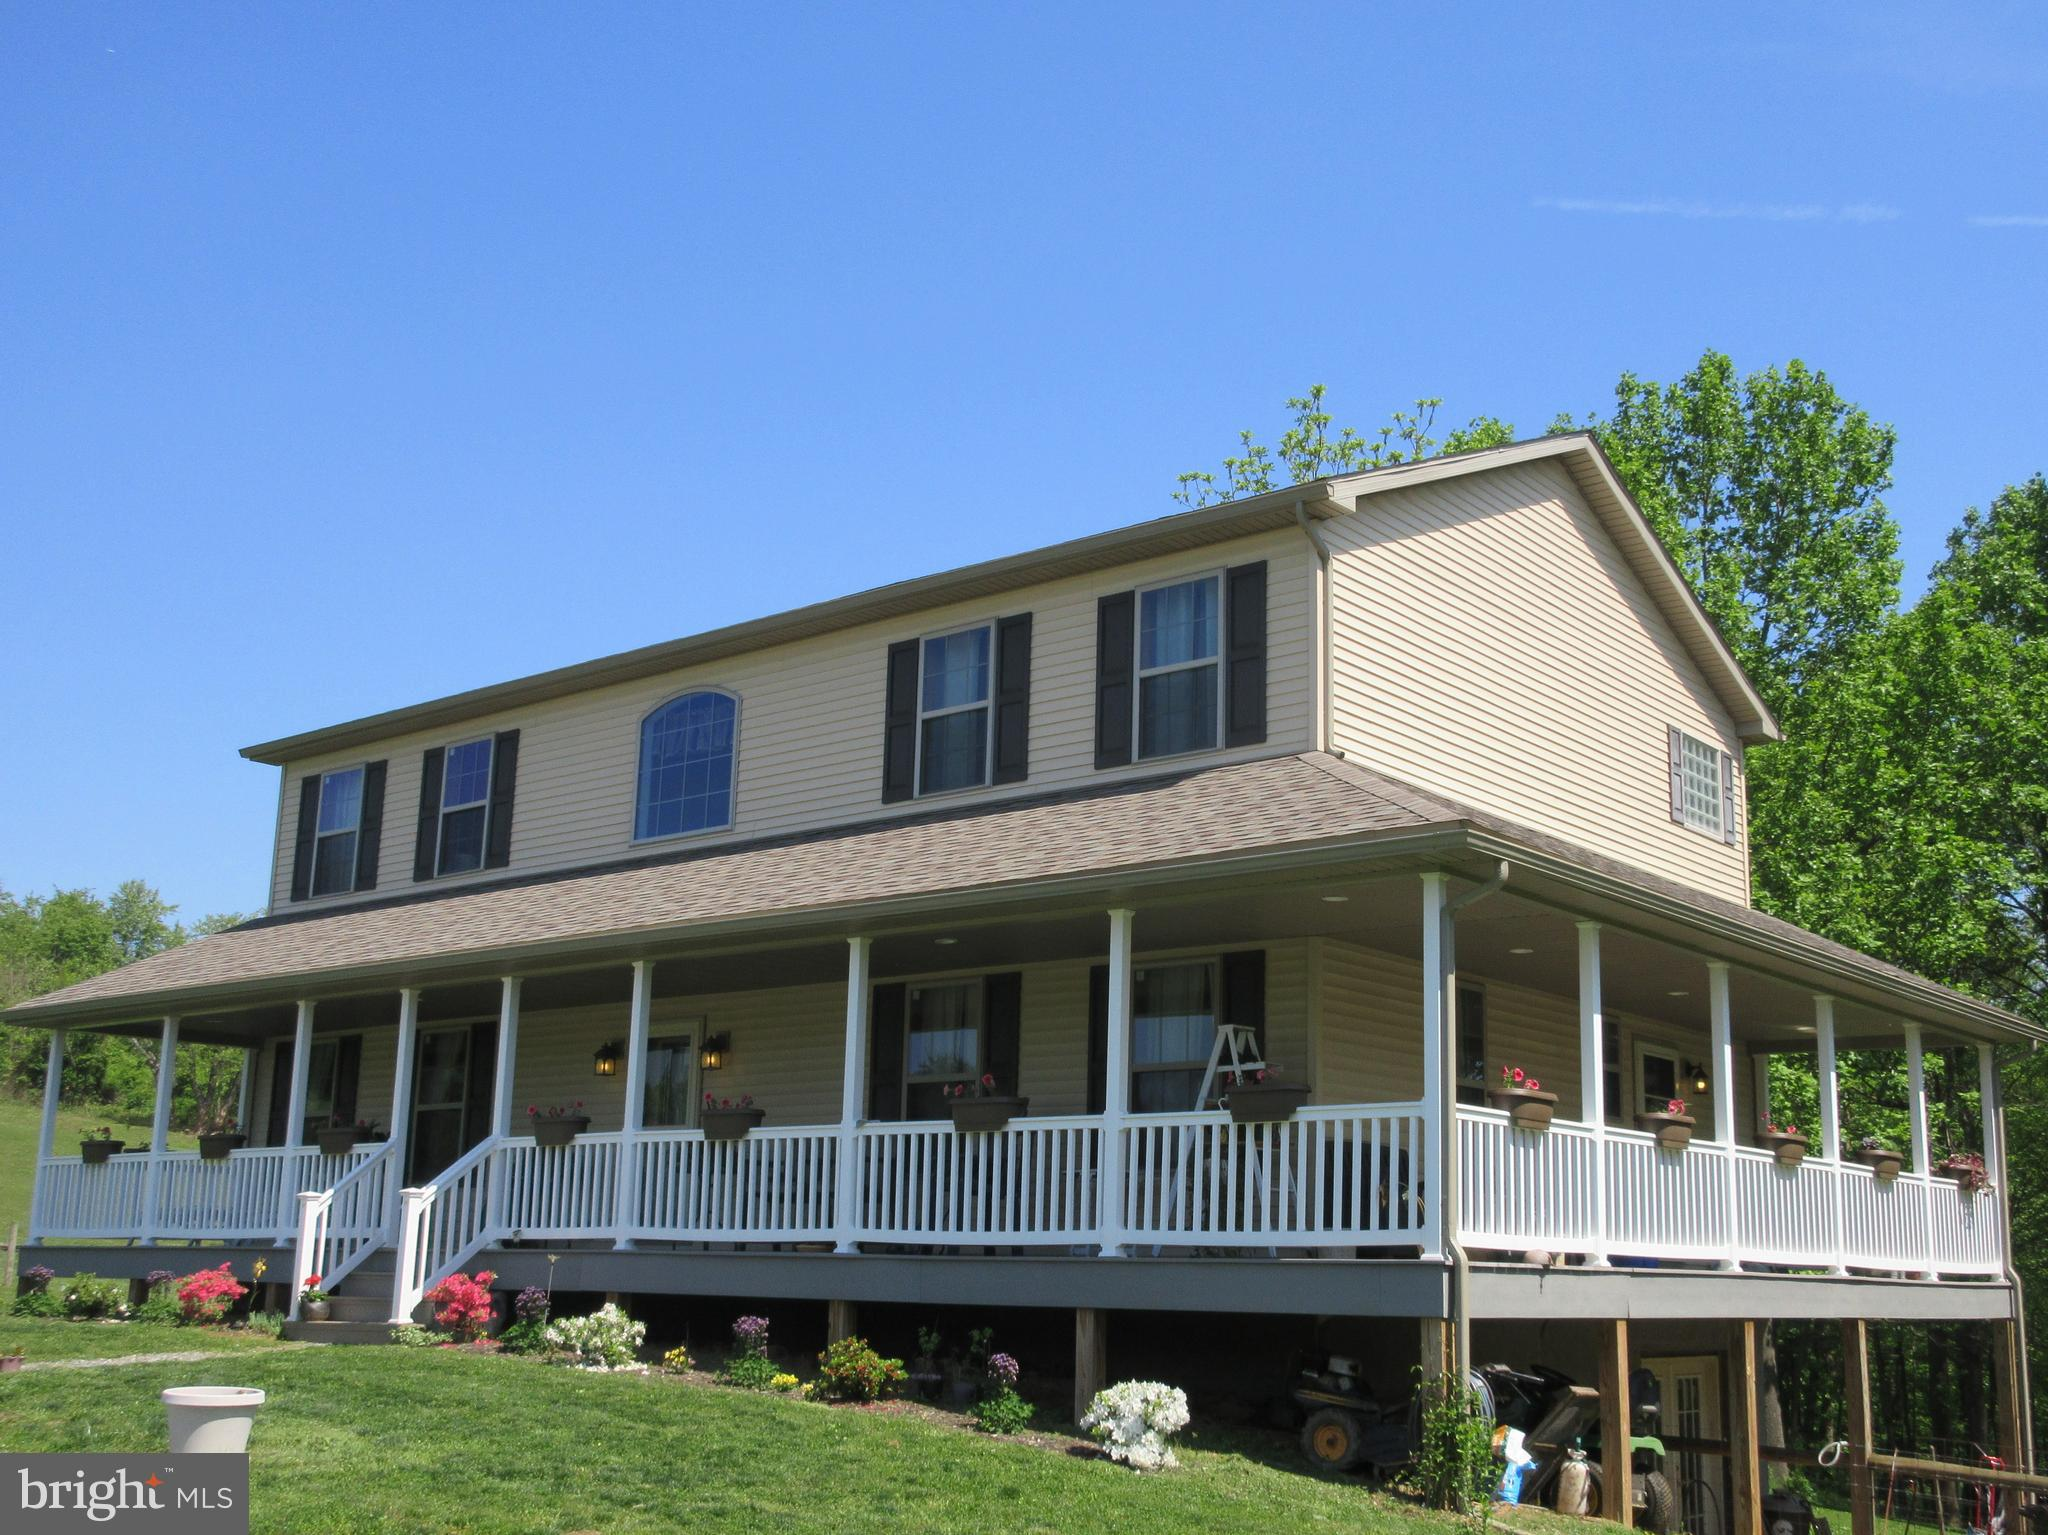 897 RICHMOND ROAD, WINDSOR, PA 17366